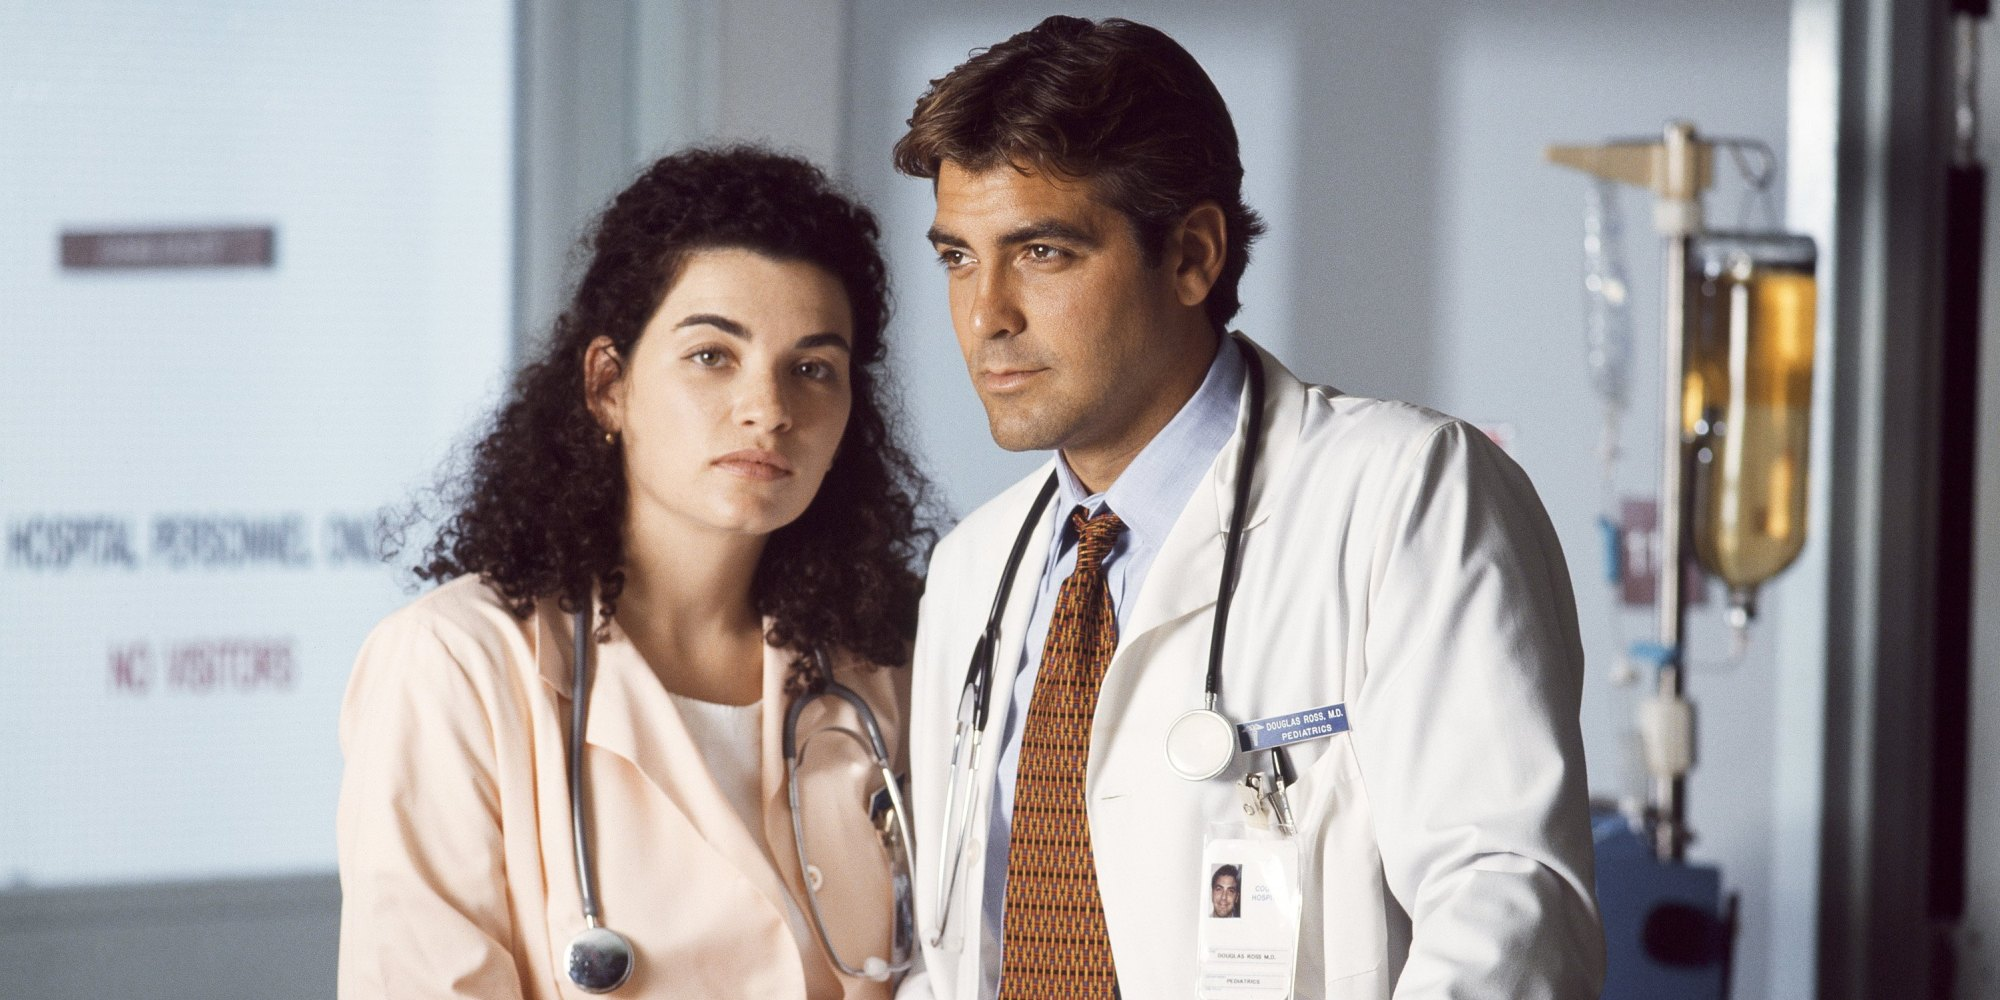 a story about dr susan sabatier and the emergency room Having just returned from darfur, pratt struggles to get the real story from two abused boys who came into the emergency room with their injured father neela becomes nervous when she is urgently called up to dr dubenko's (recurring guest star leland orser) office, but she is quickly relieved to hear what he has to say.